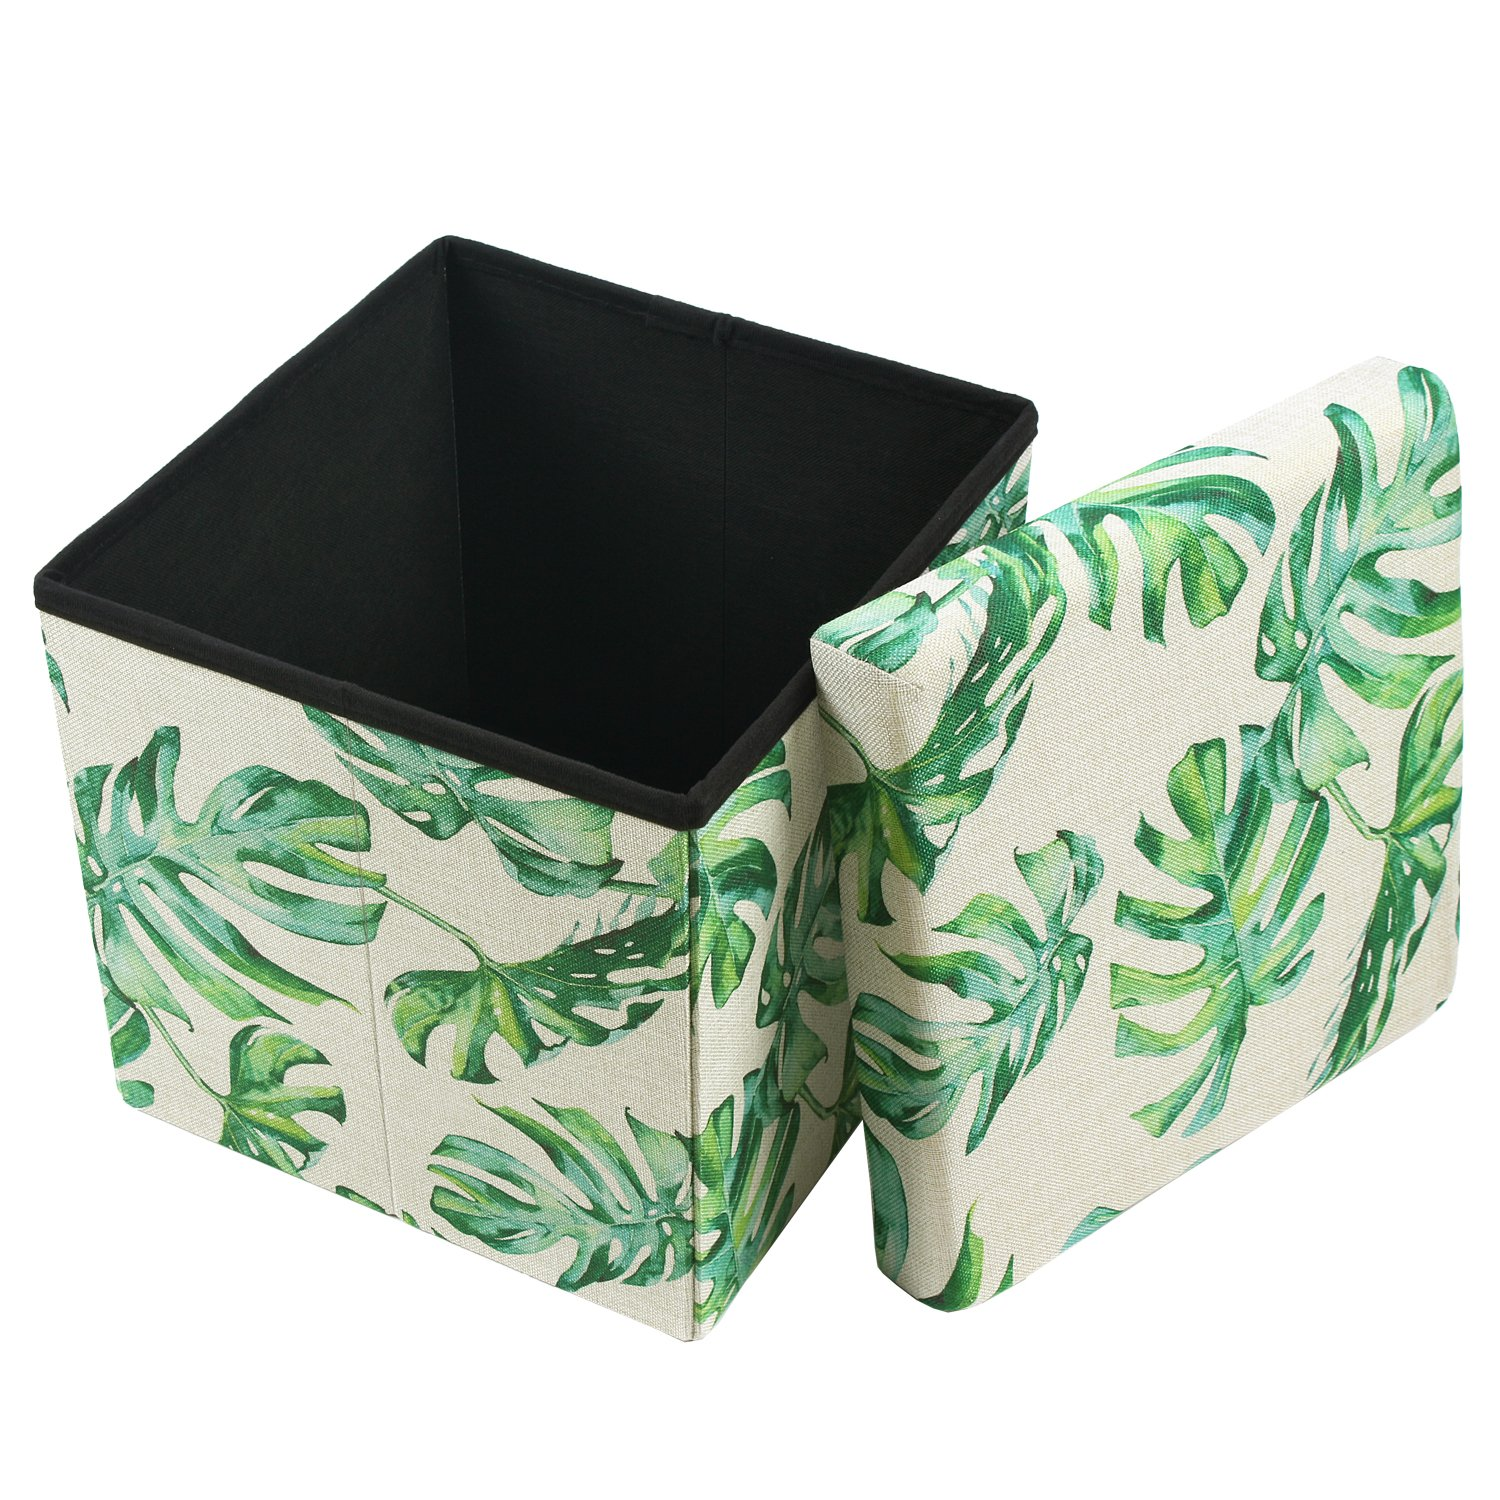 Ikee Design Tropical Leaves Pattern Folding Storage Ottoman – Split Leaf Philodendron Polyester Collapsible Cube Foot Rest Stool Coffee Table